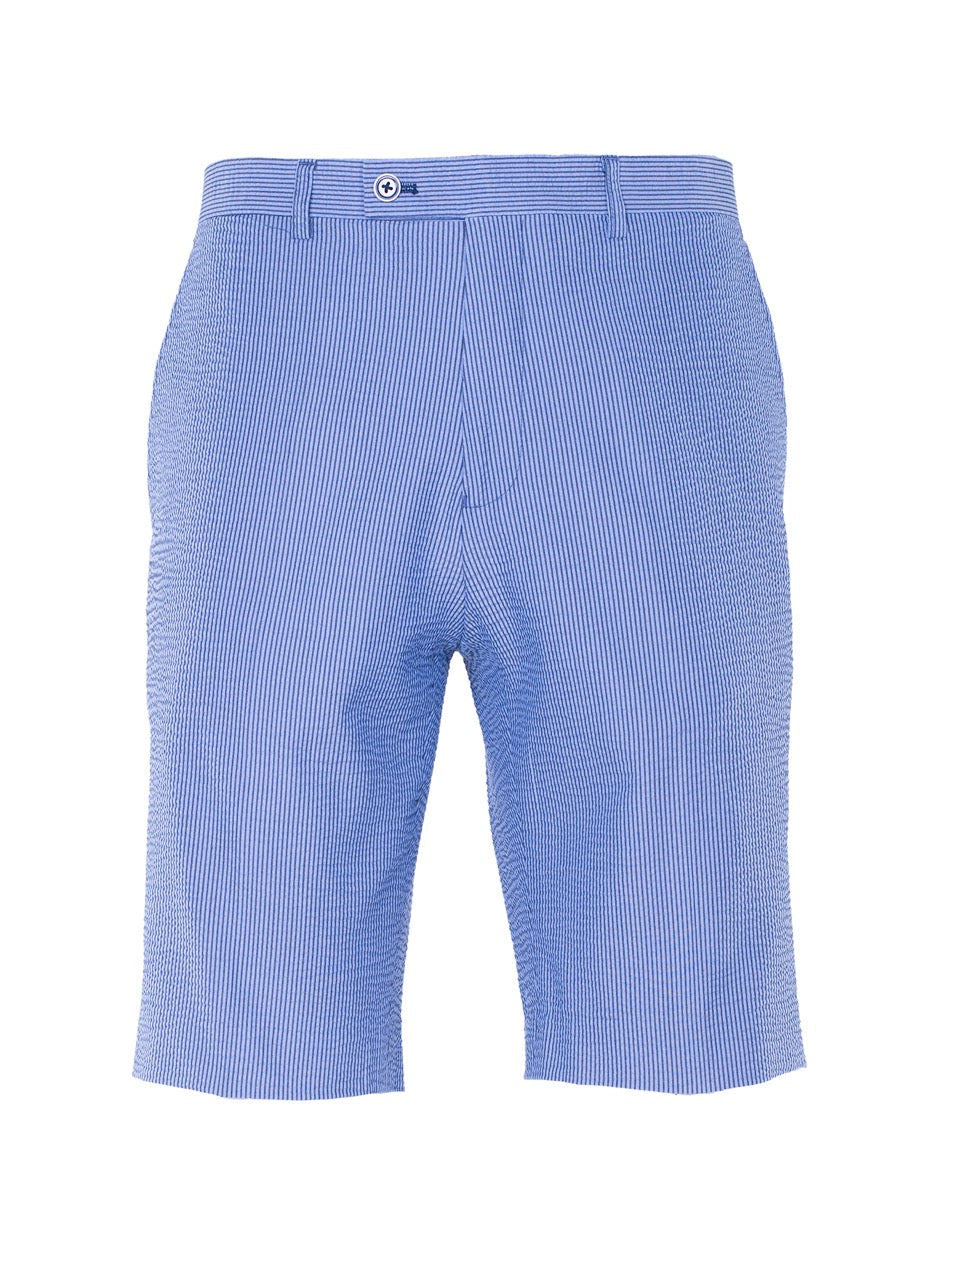 Fairview Shorts - Blue & Grey Seersucker